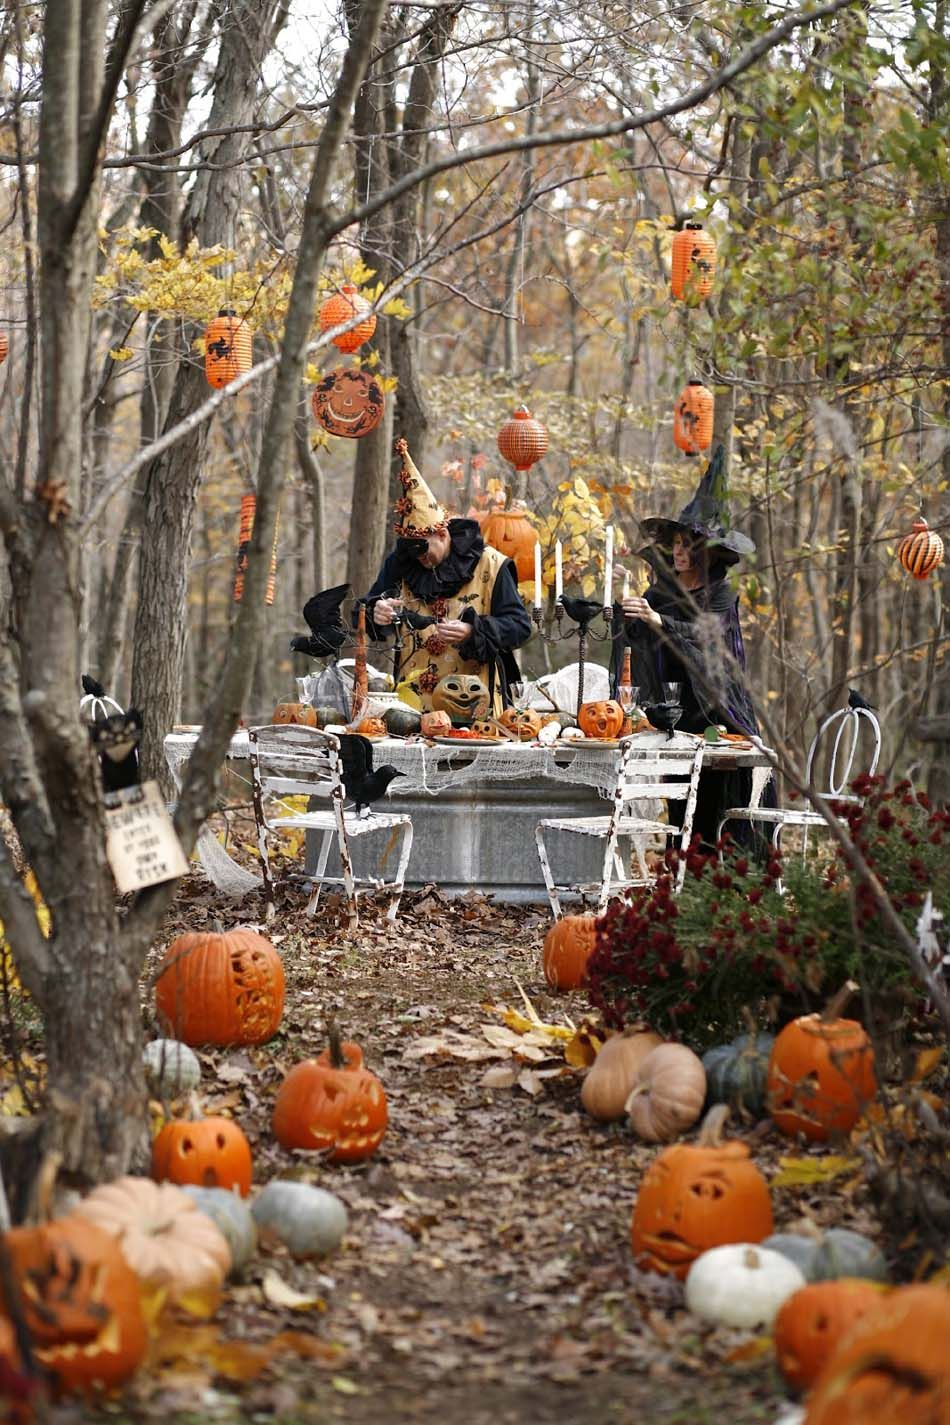 Halloween Decoration Maison Décoration Halloween : 16 Inspirations En Images Pour